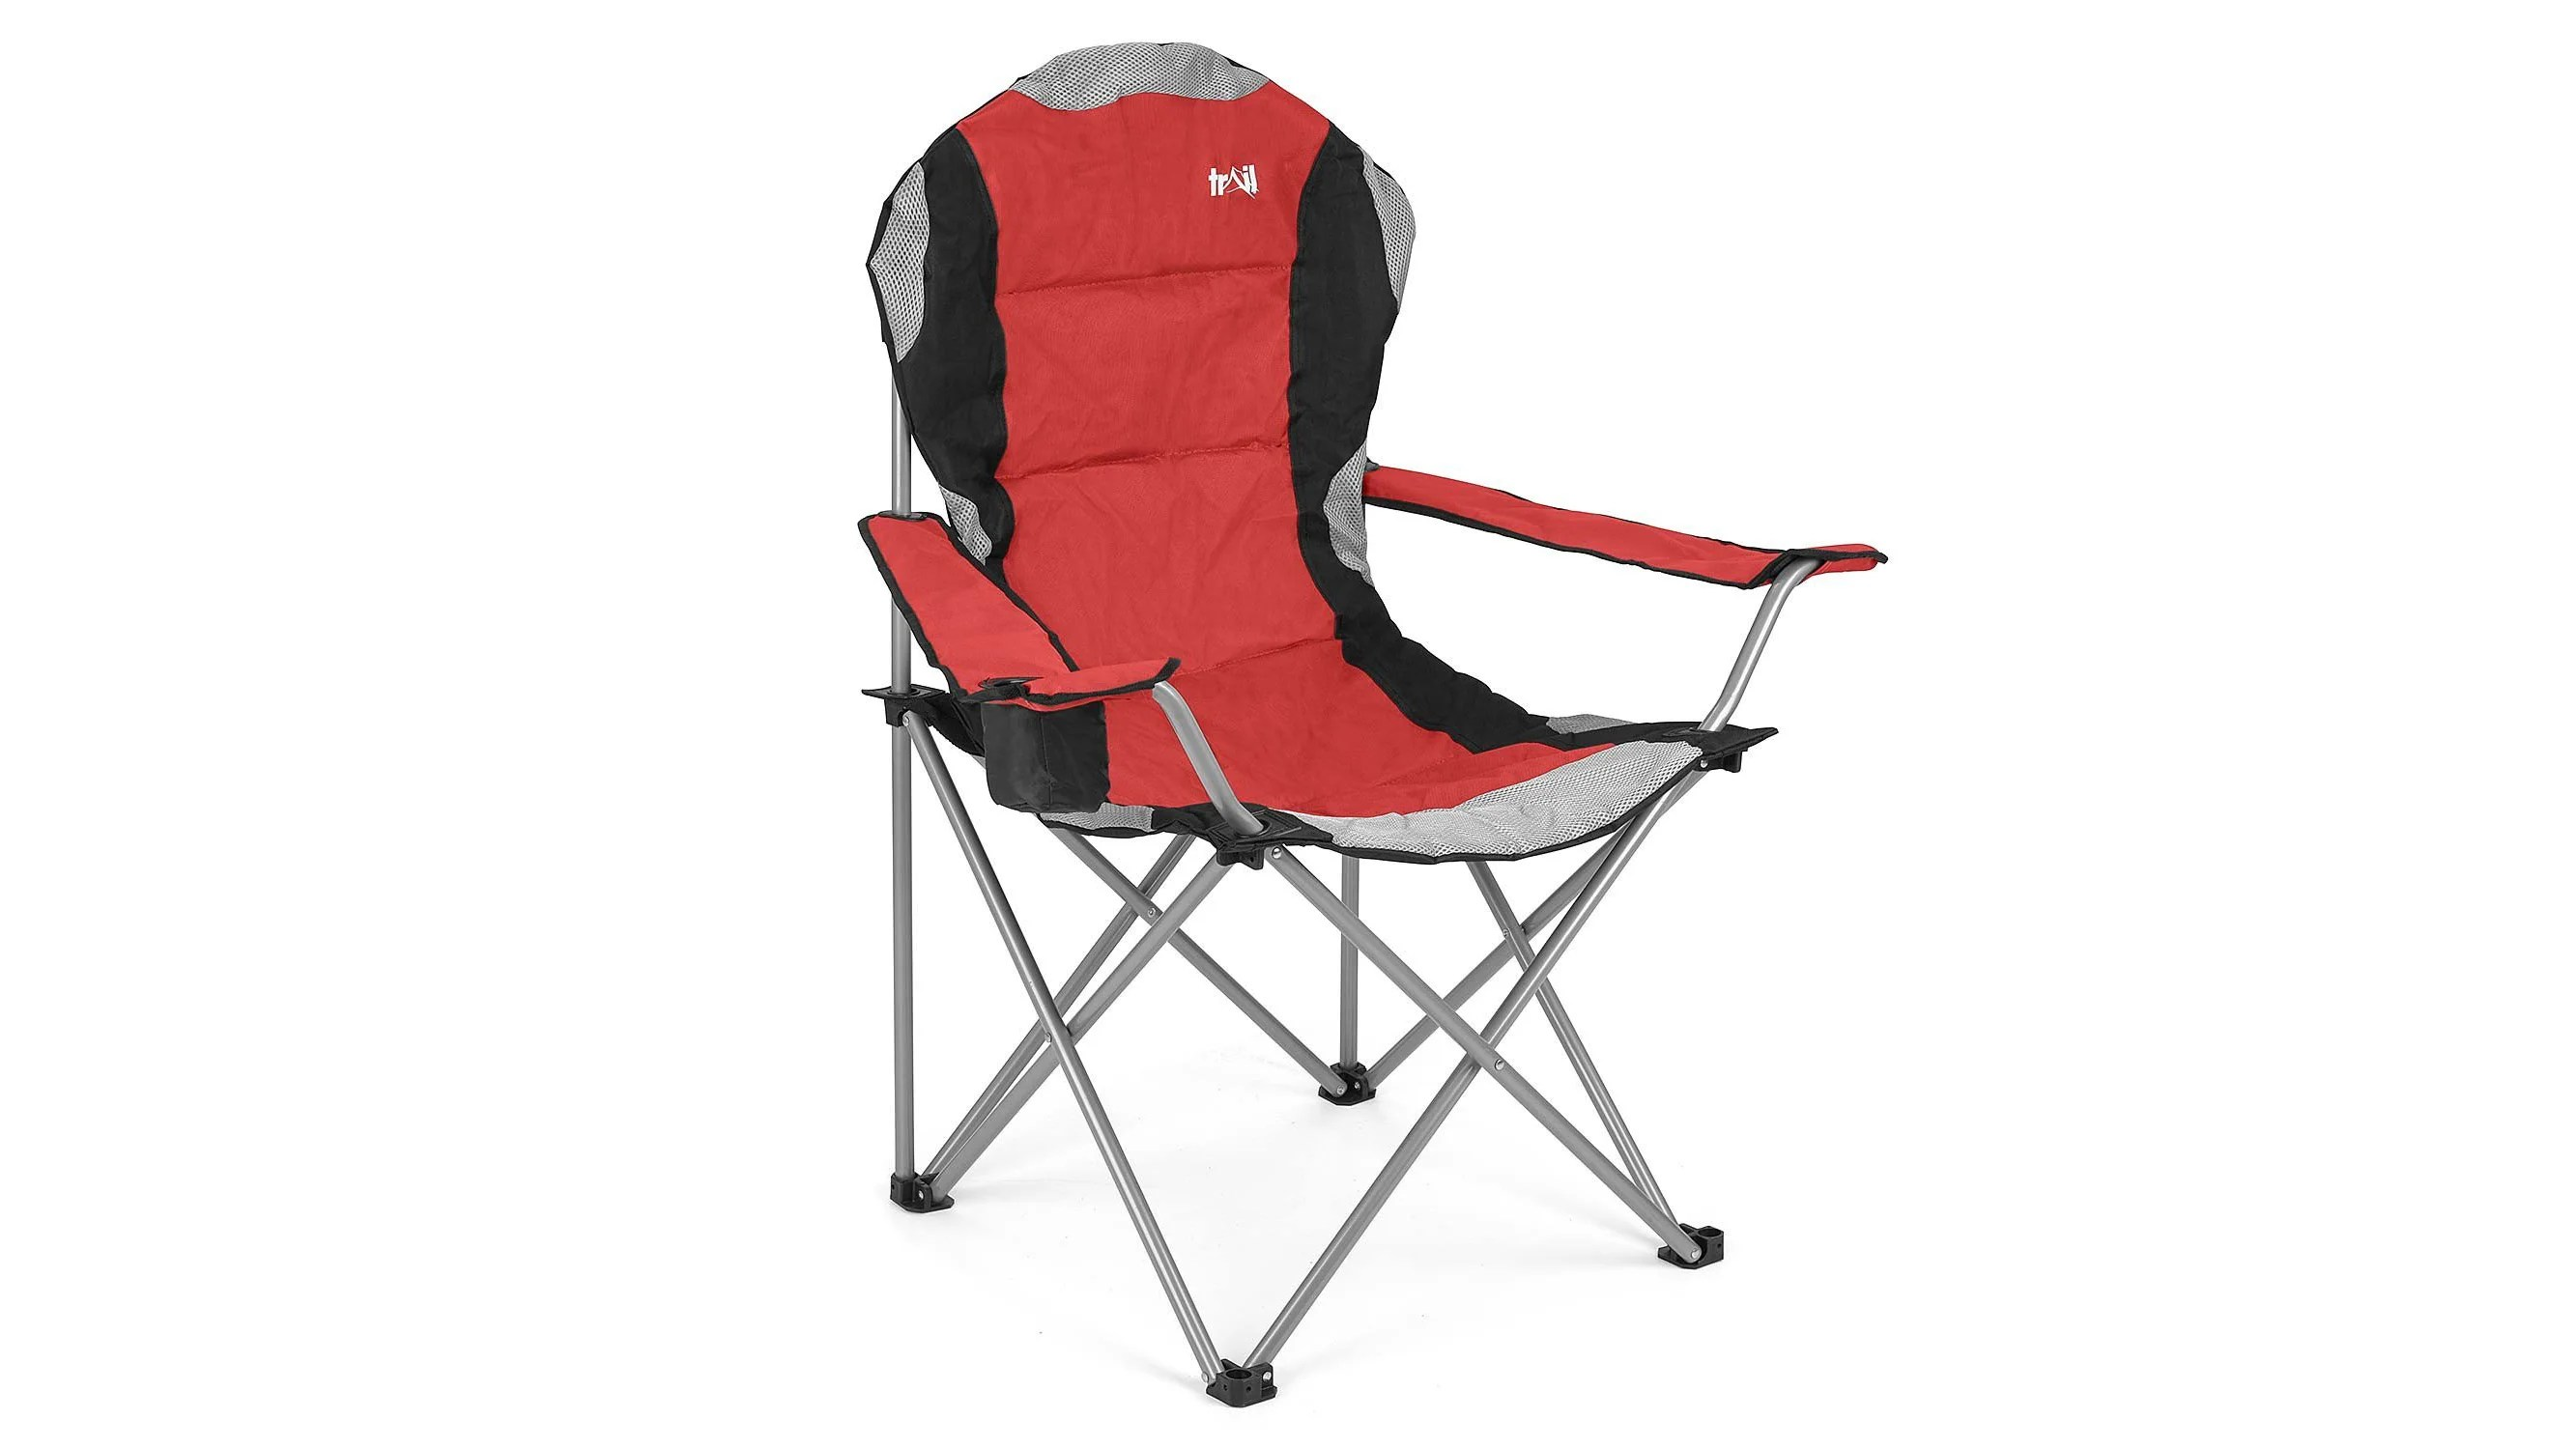 Double Camping Chair Best Camping Chairs The Best Chairs For Summer Camping From 10